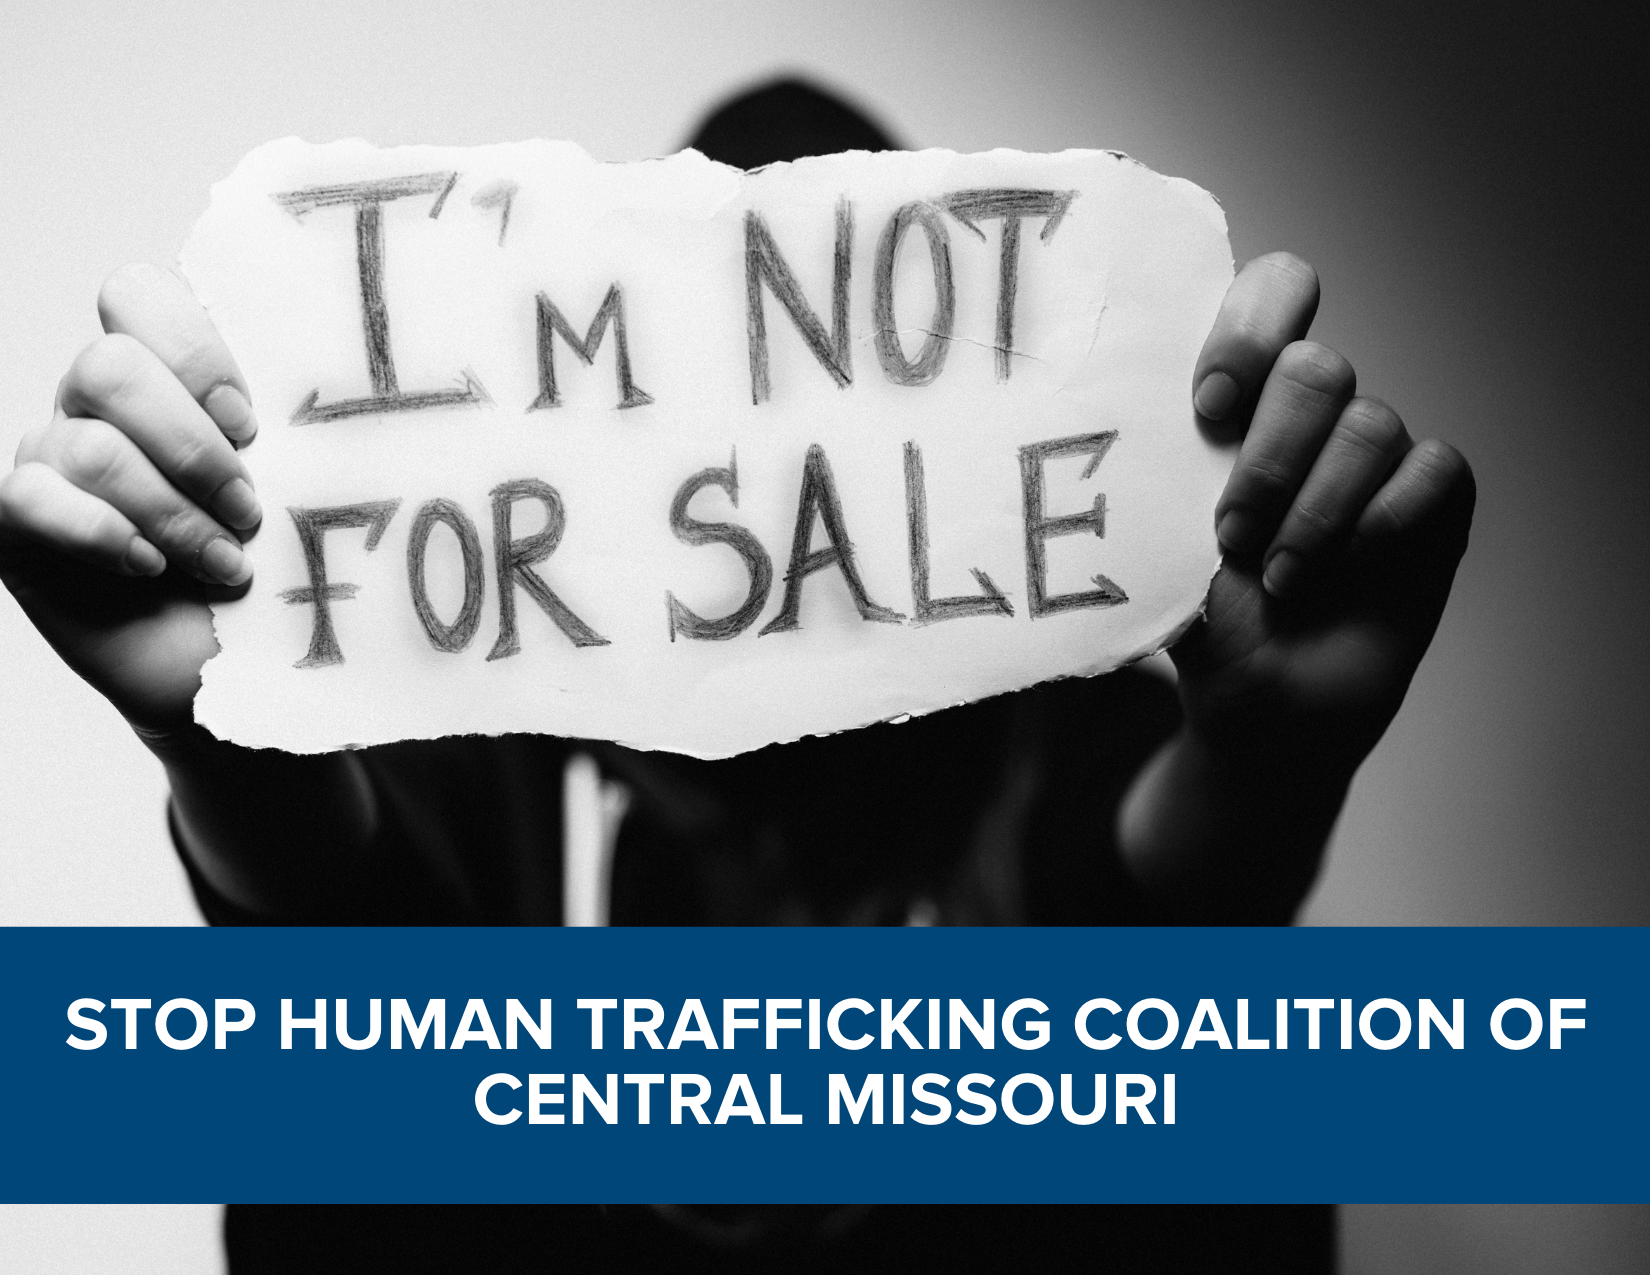 Stop Human Trafficking Coalition of Central Missouri